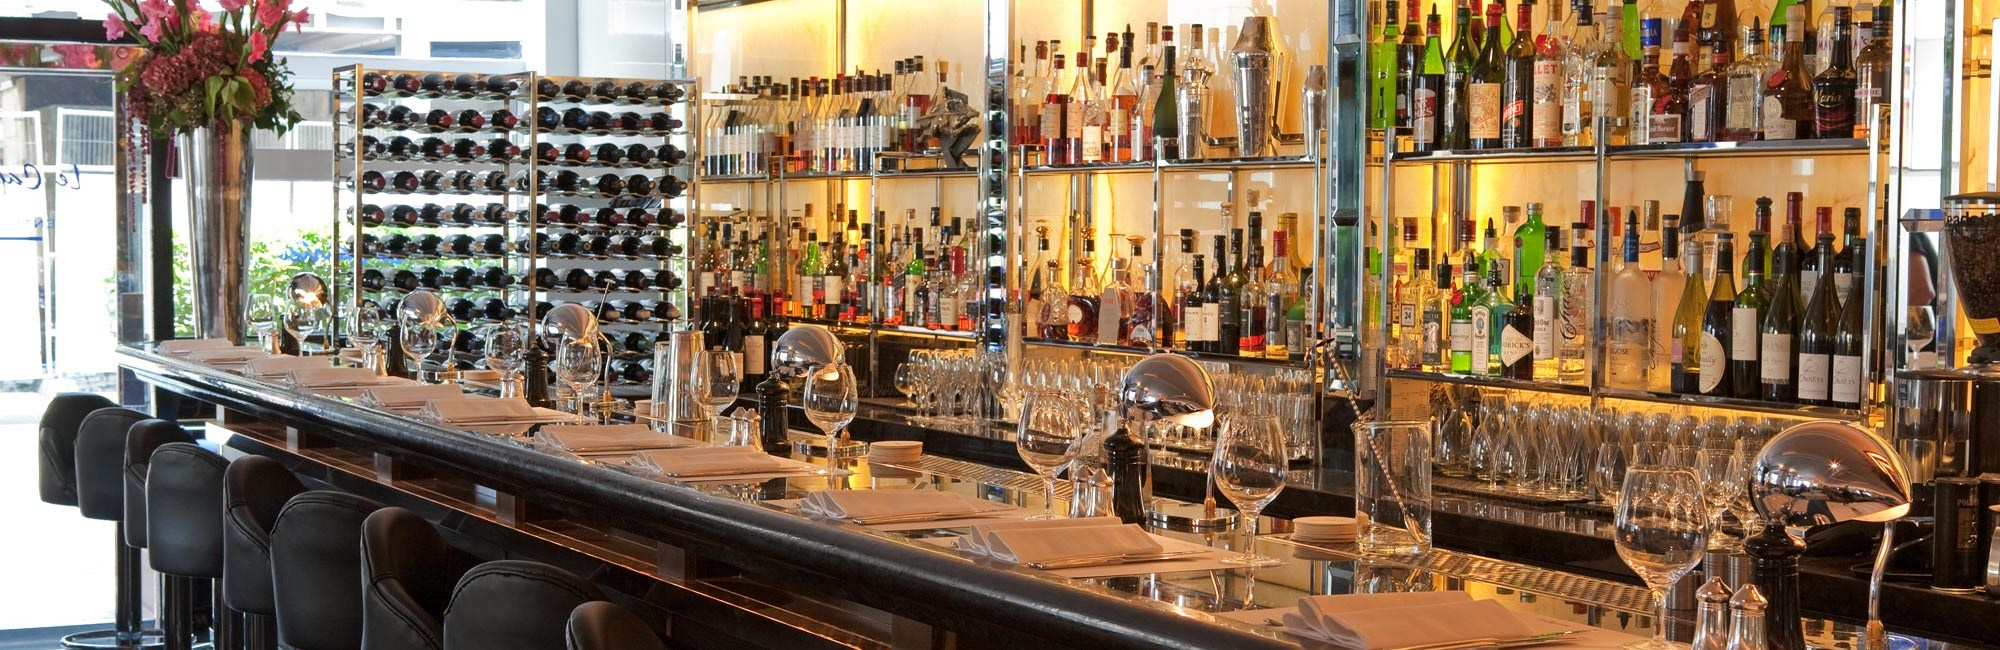 The Bar at Le Caprice, Restaurant in St Jame's near Green Park, London